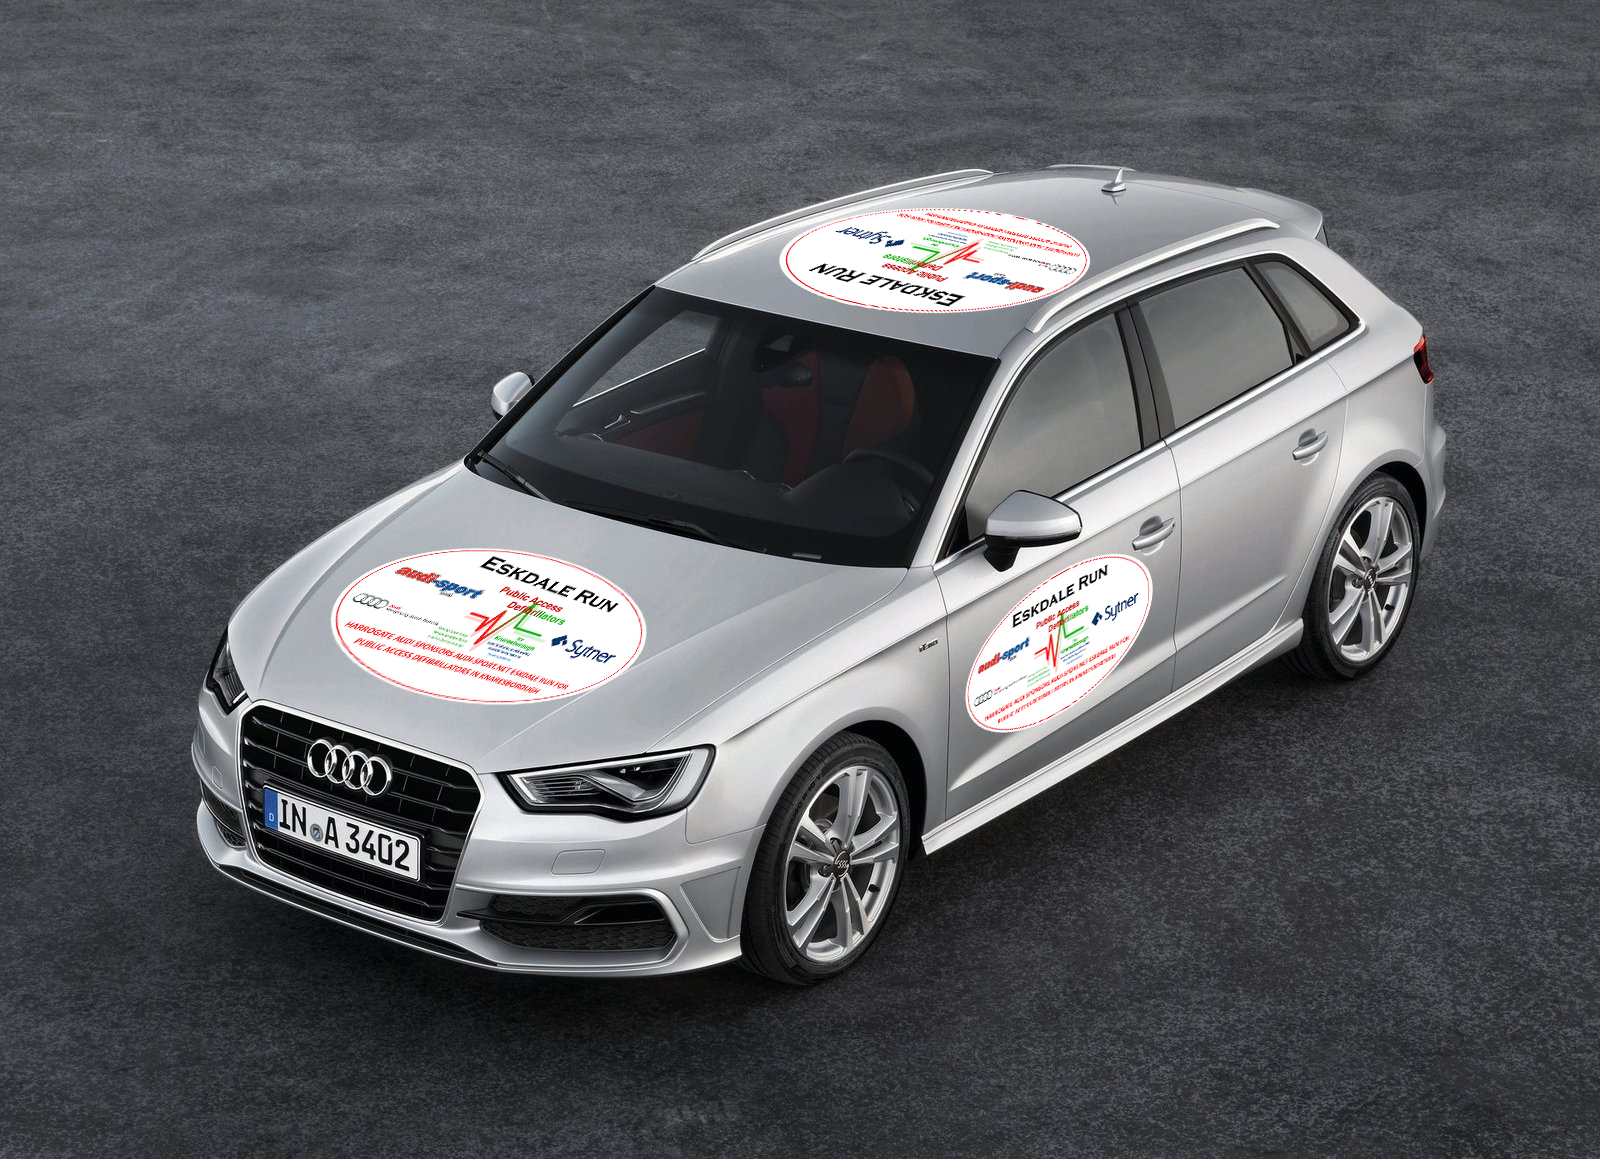 Audi-A3-Sportback-S-Line-Top-View copy.jpg